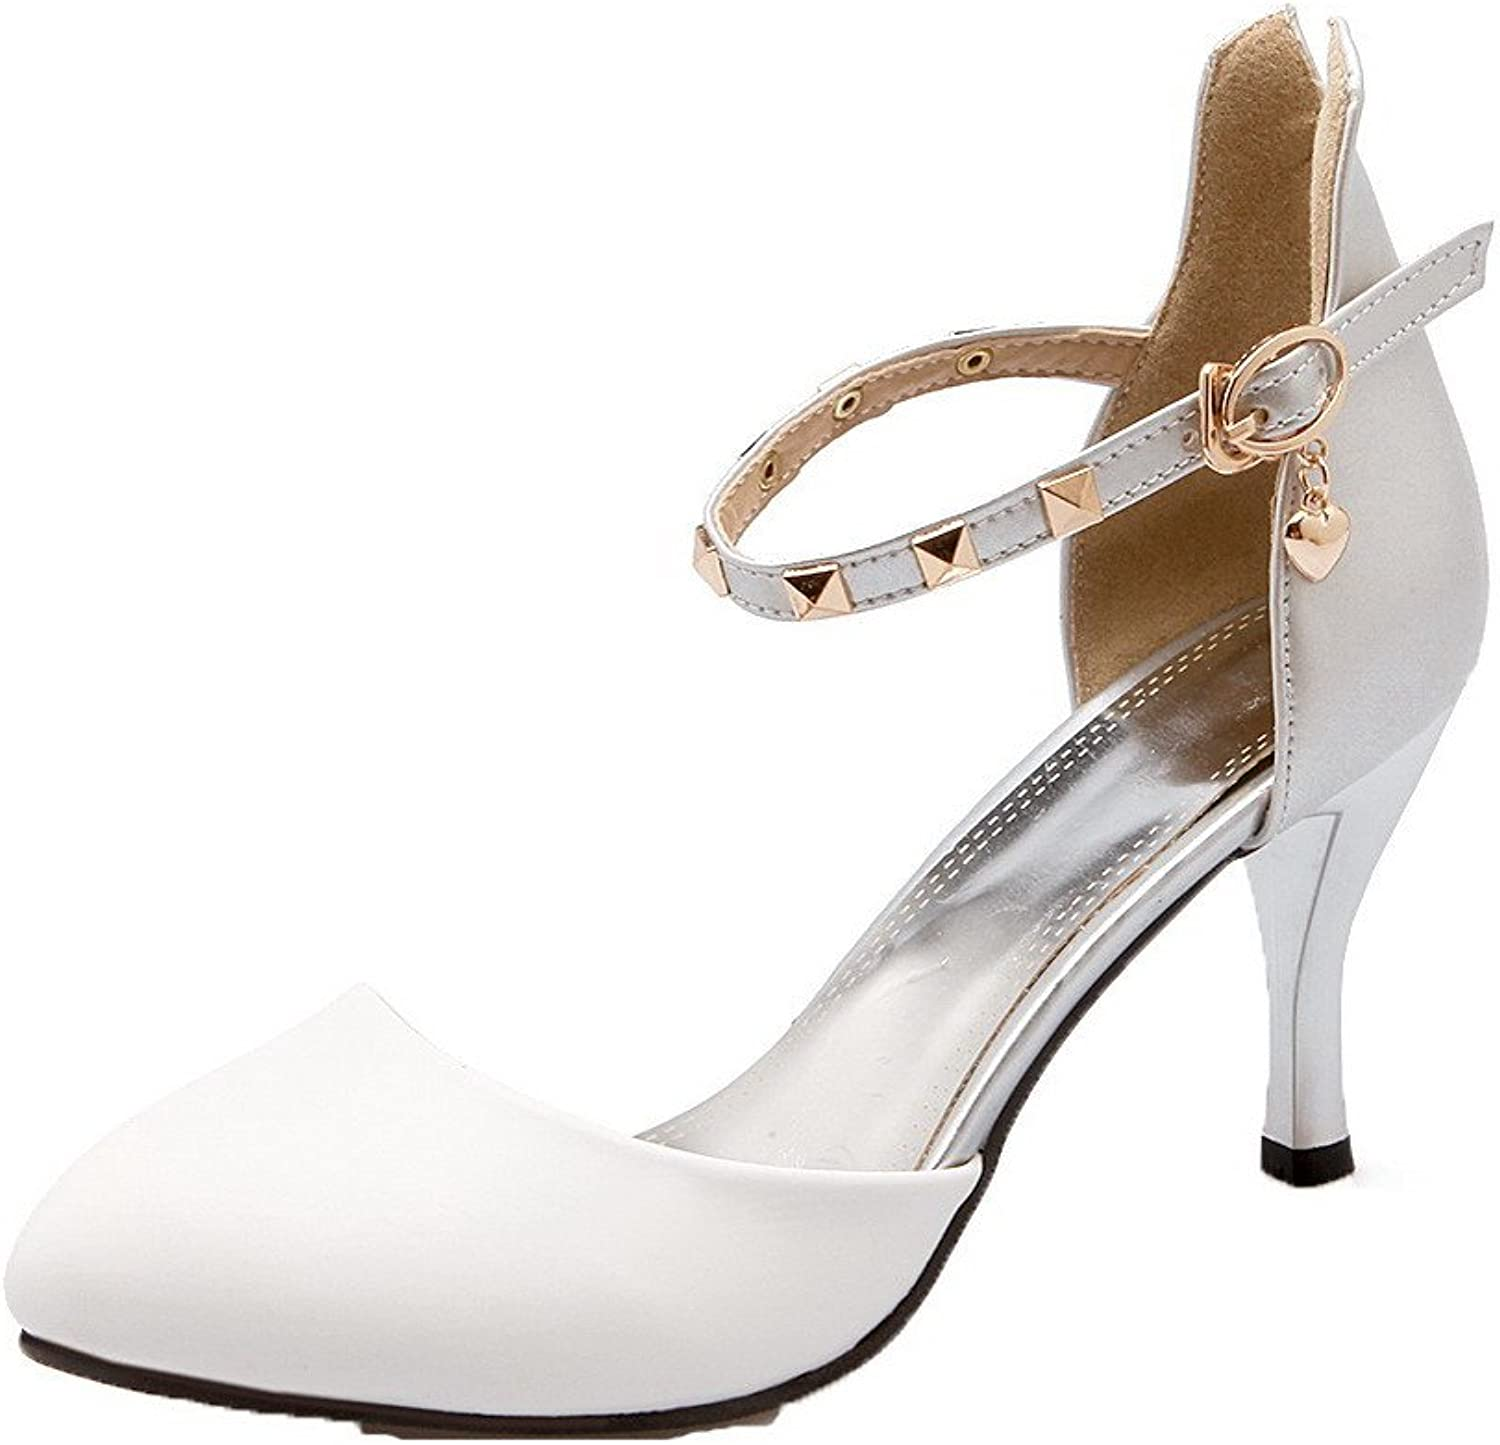 WeenFashion Women's High-Heels PU Assorted color Buckle Closed-Toe Sandals